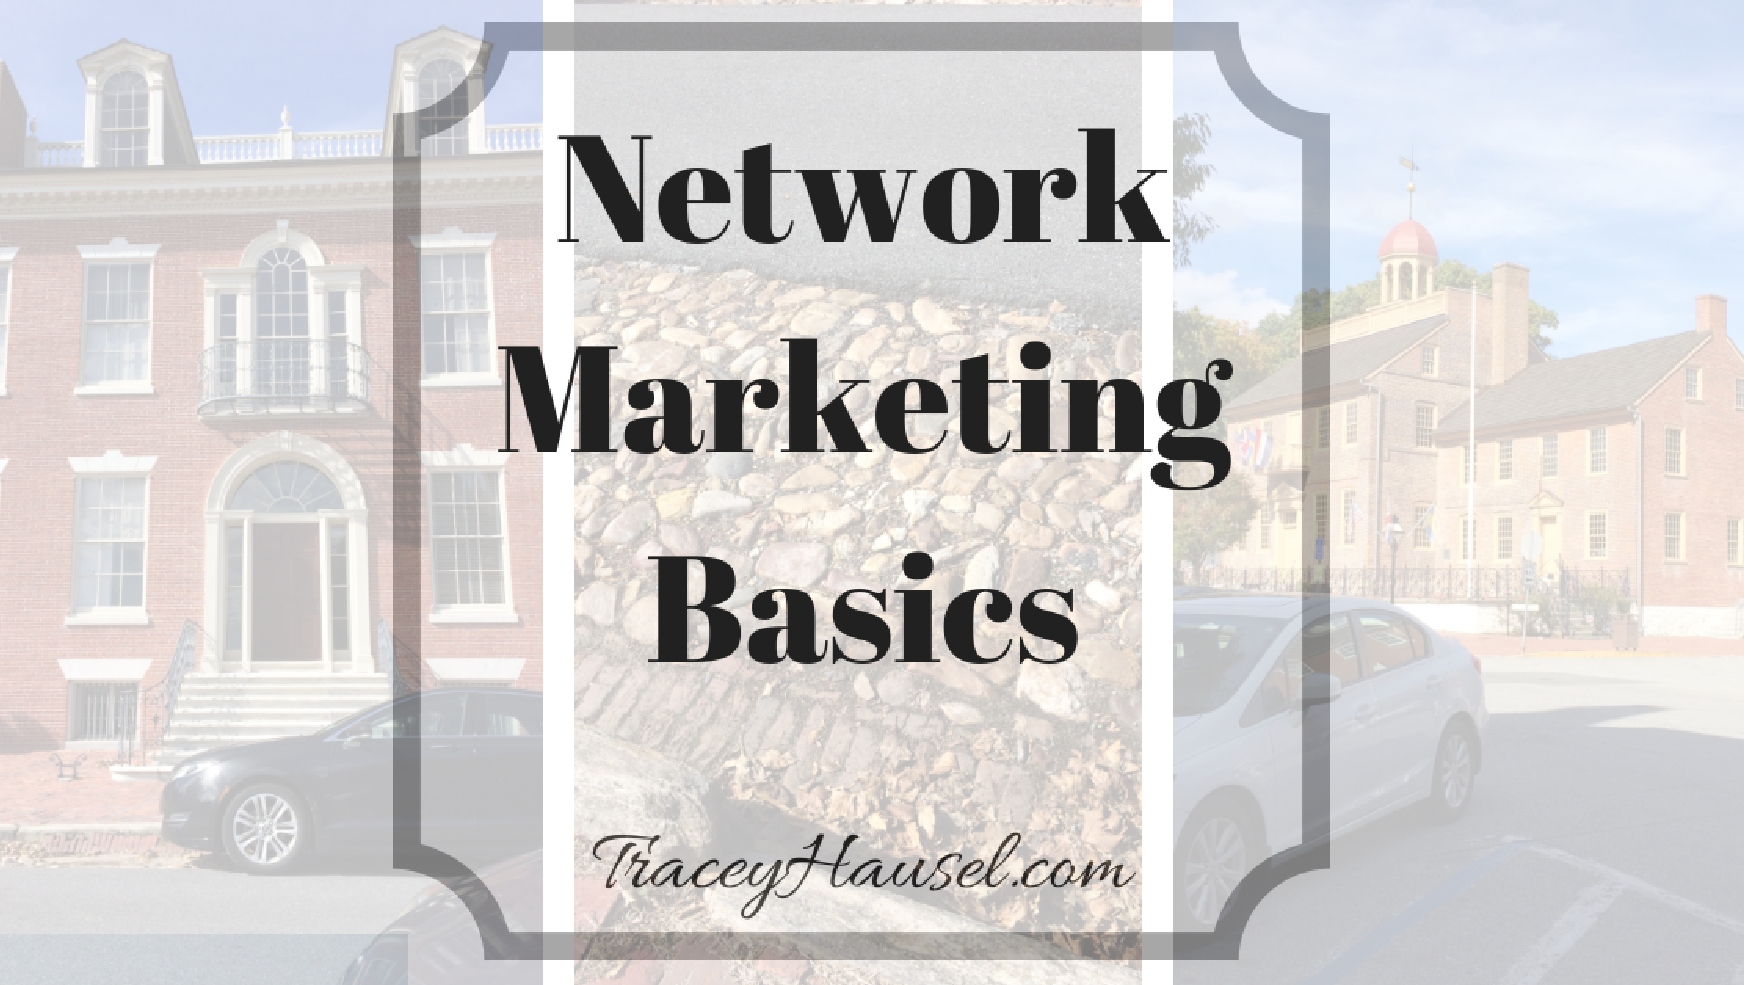 Network Marketing Basics with pictures from Old New Castle, Delaware